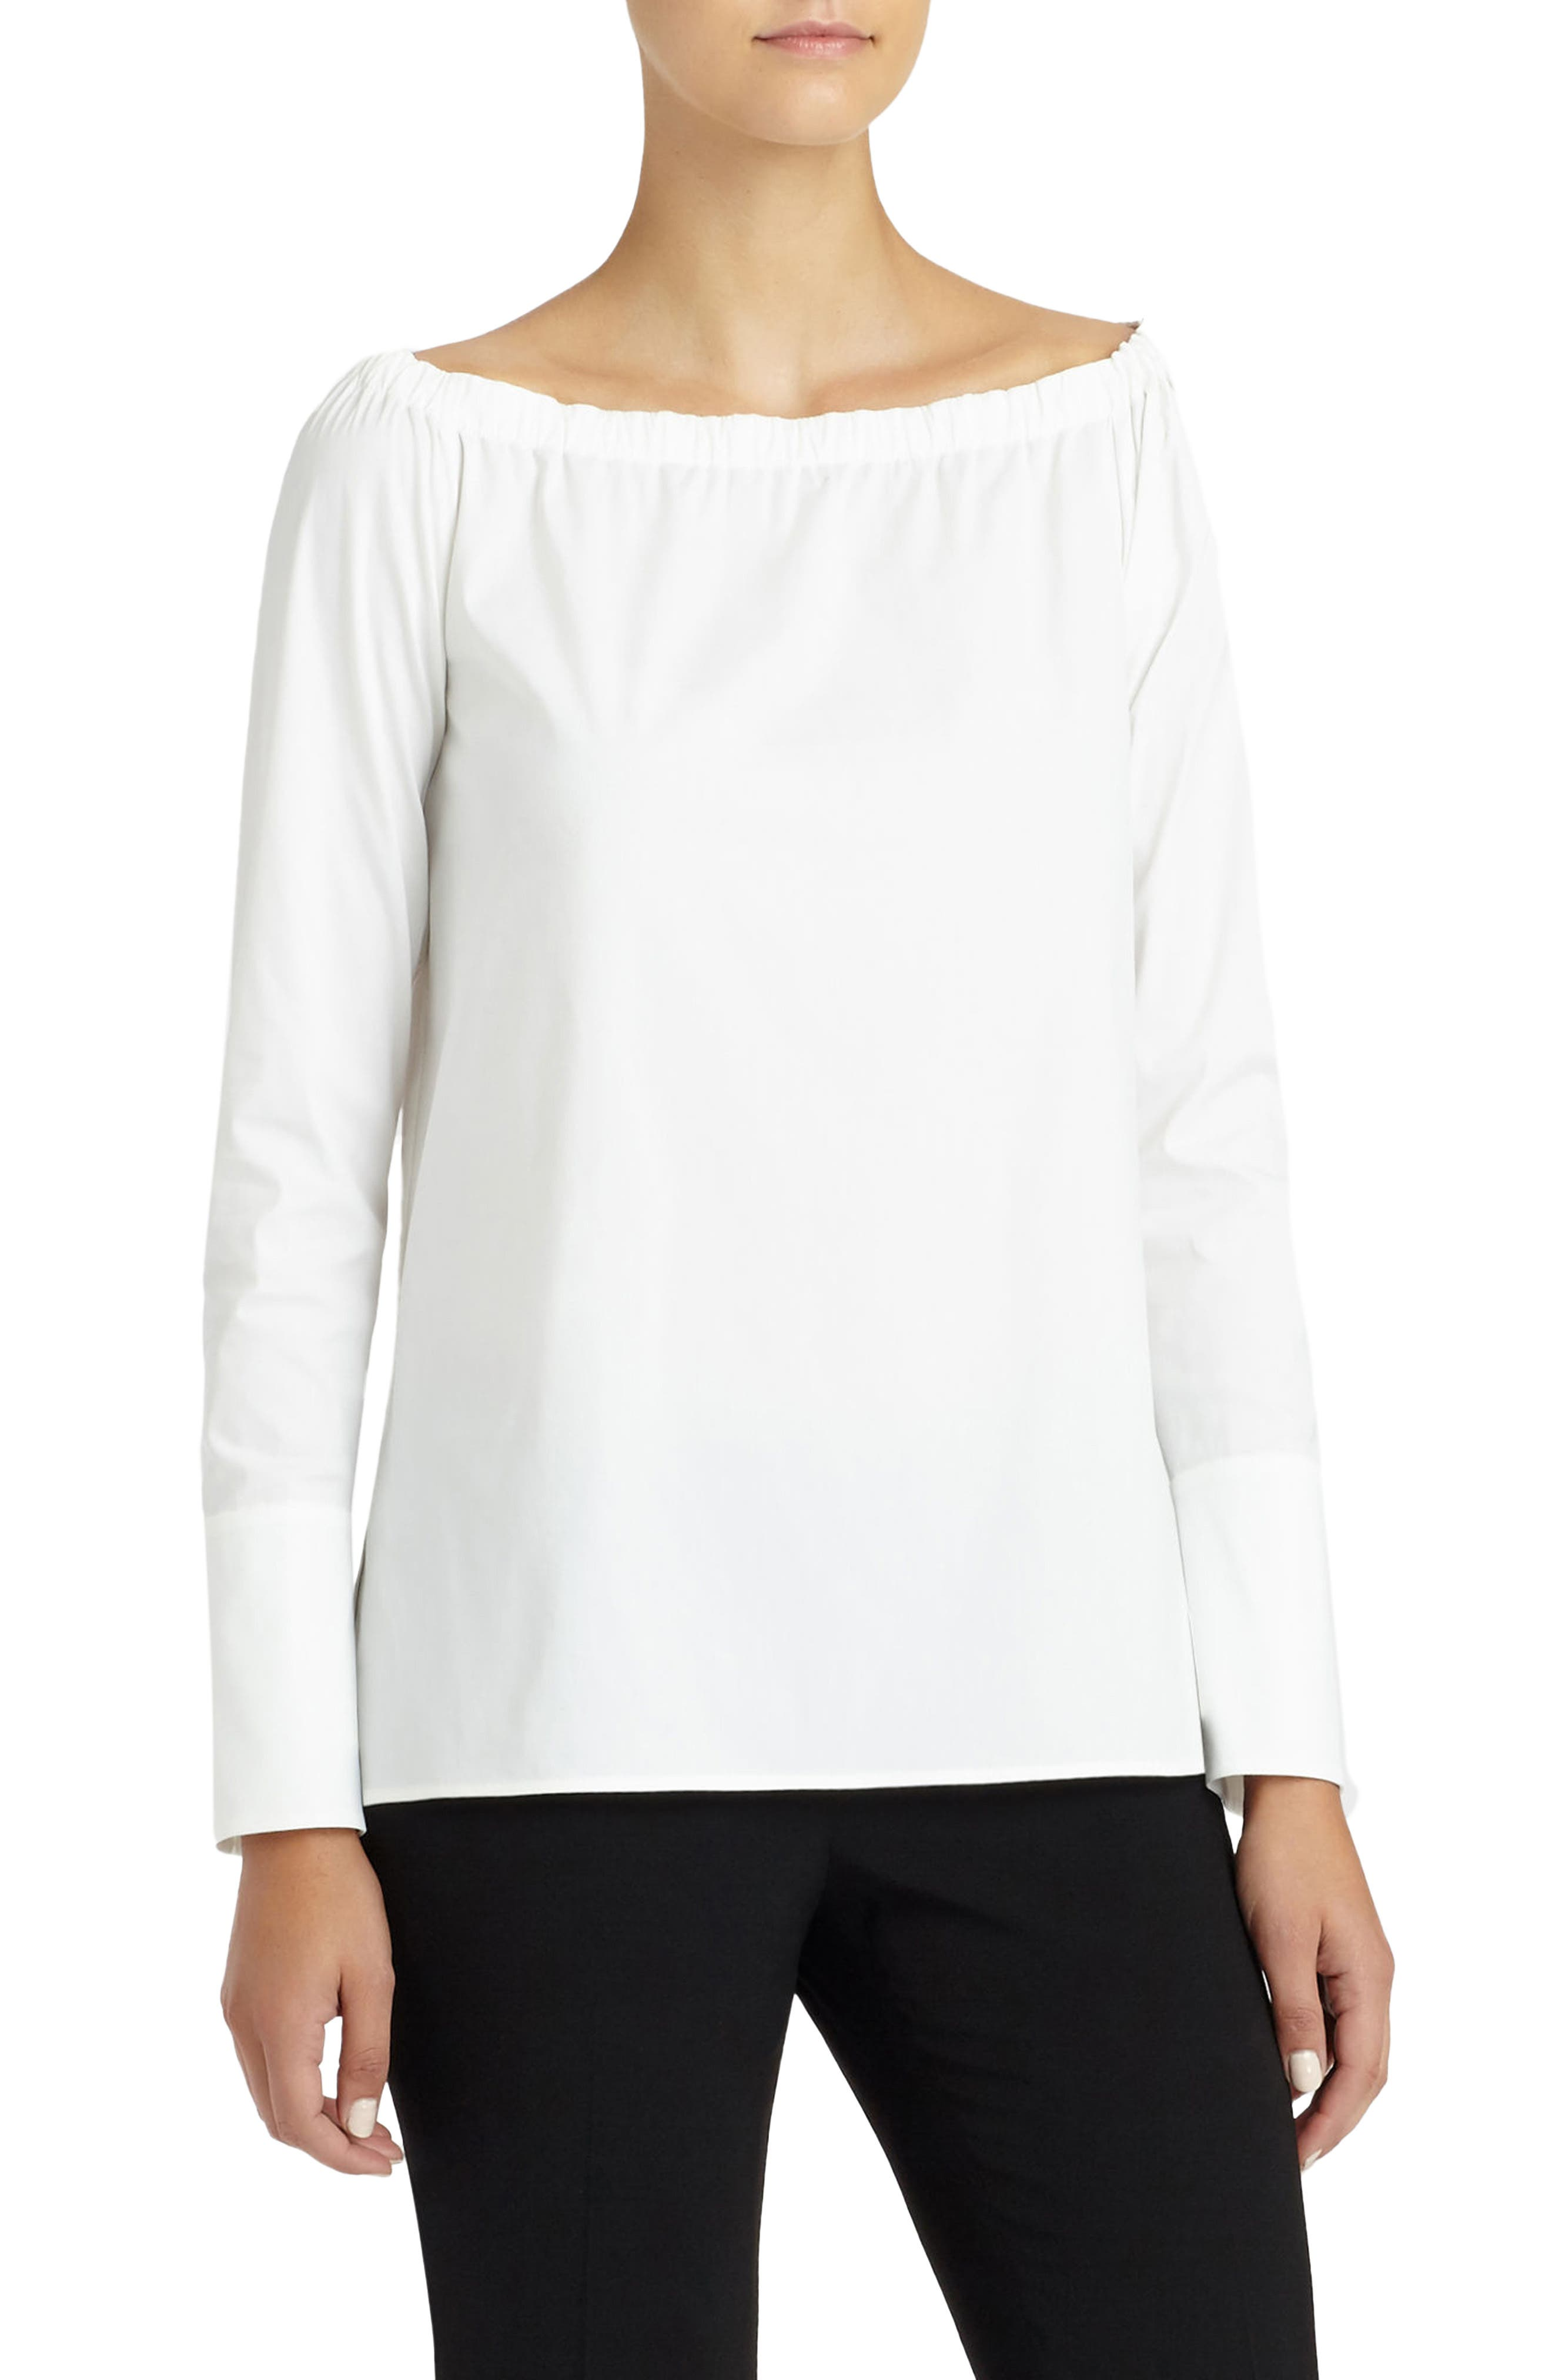 LAFAYETTE 148 NEW YORK,                             Amy Blouse,                             Alternate thumbnail 3, color,                             WHITE